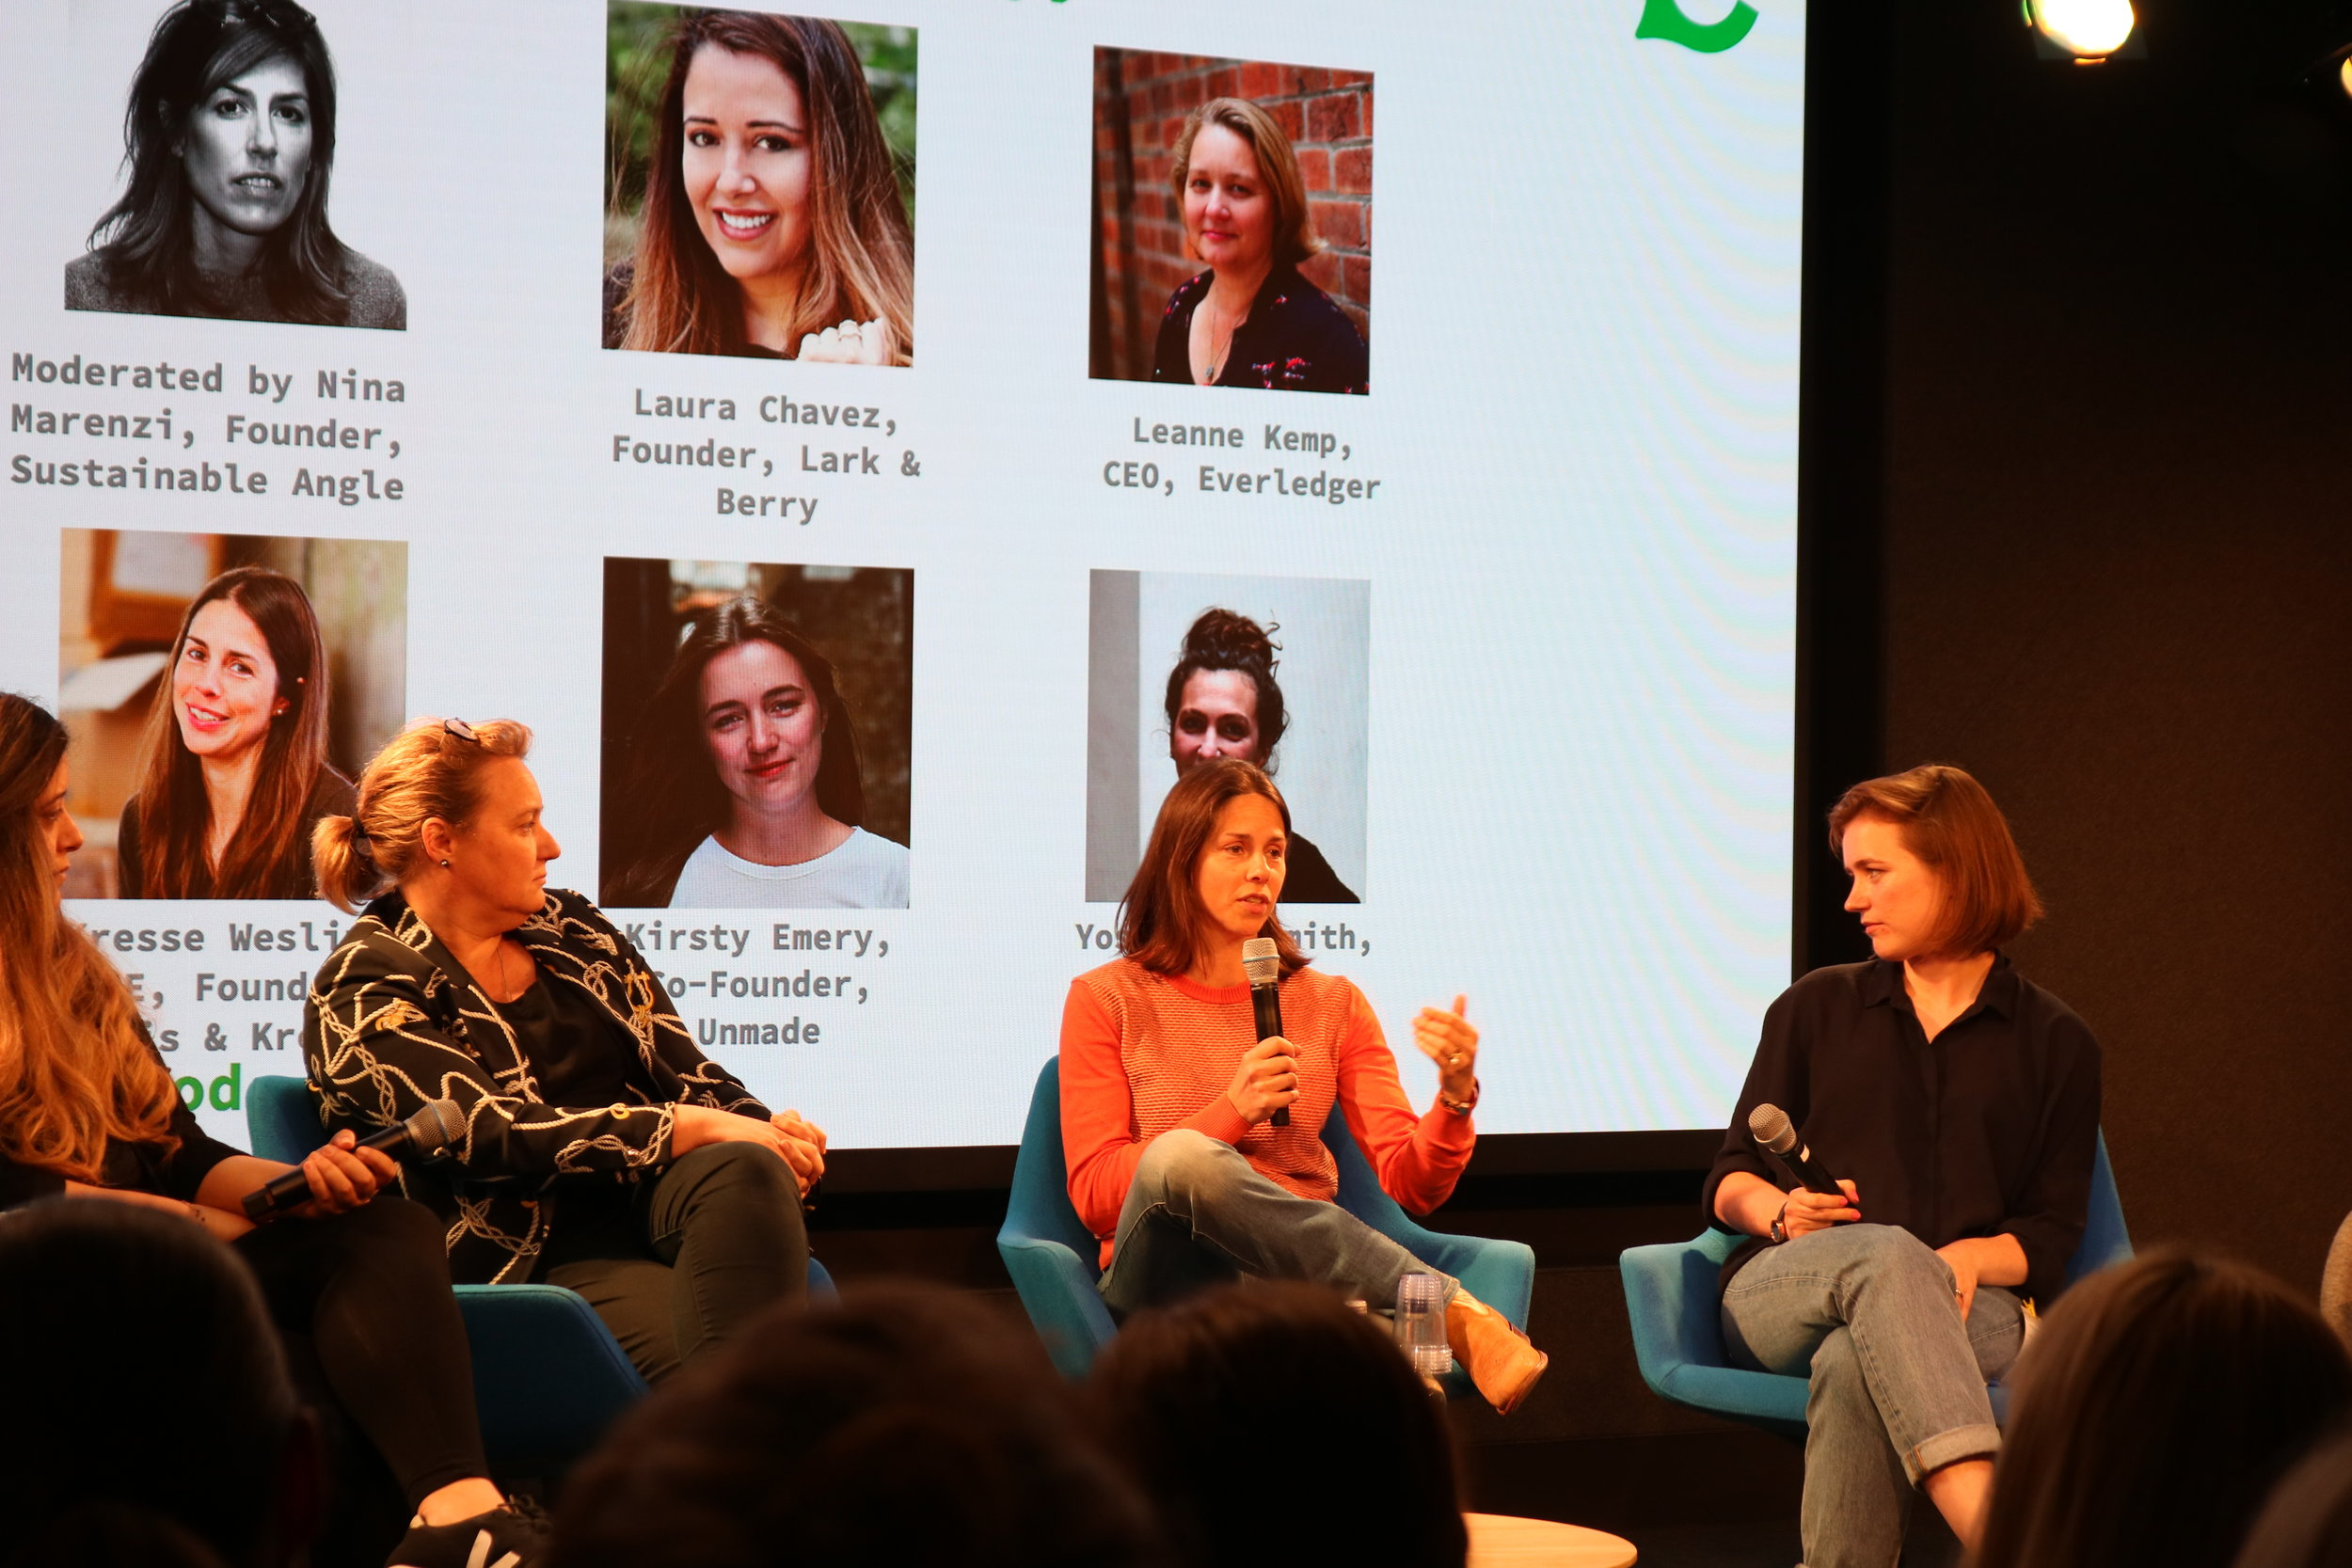 Highlights from our 'Fashion Meets Tech: How Innovation is Creating Sustainability in Fashion' event at our H.Q., Google Campus for Start-Ups. -